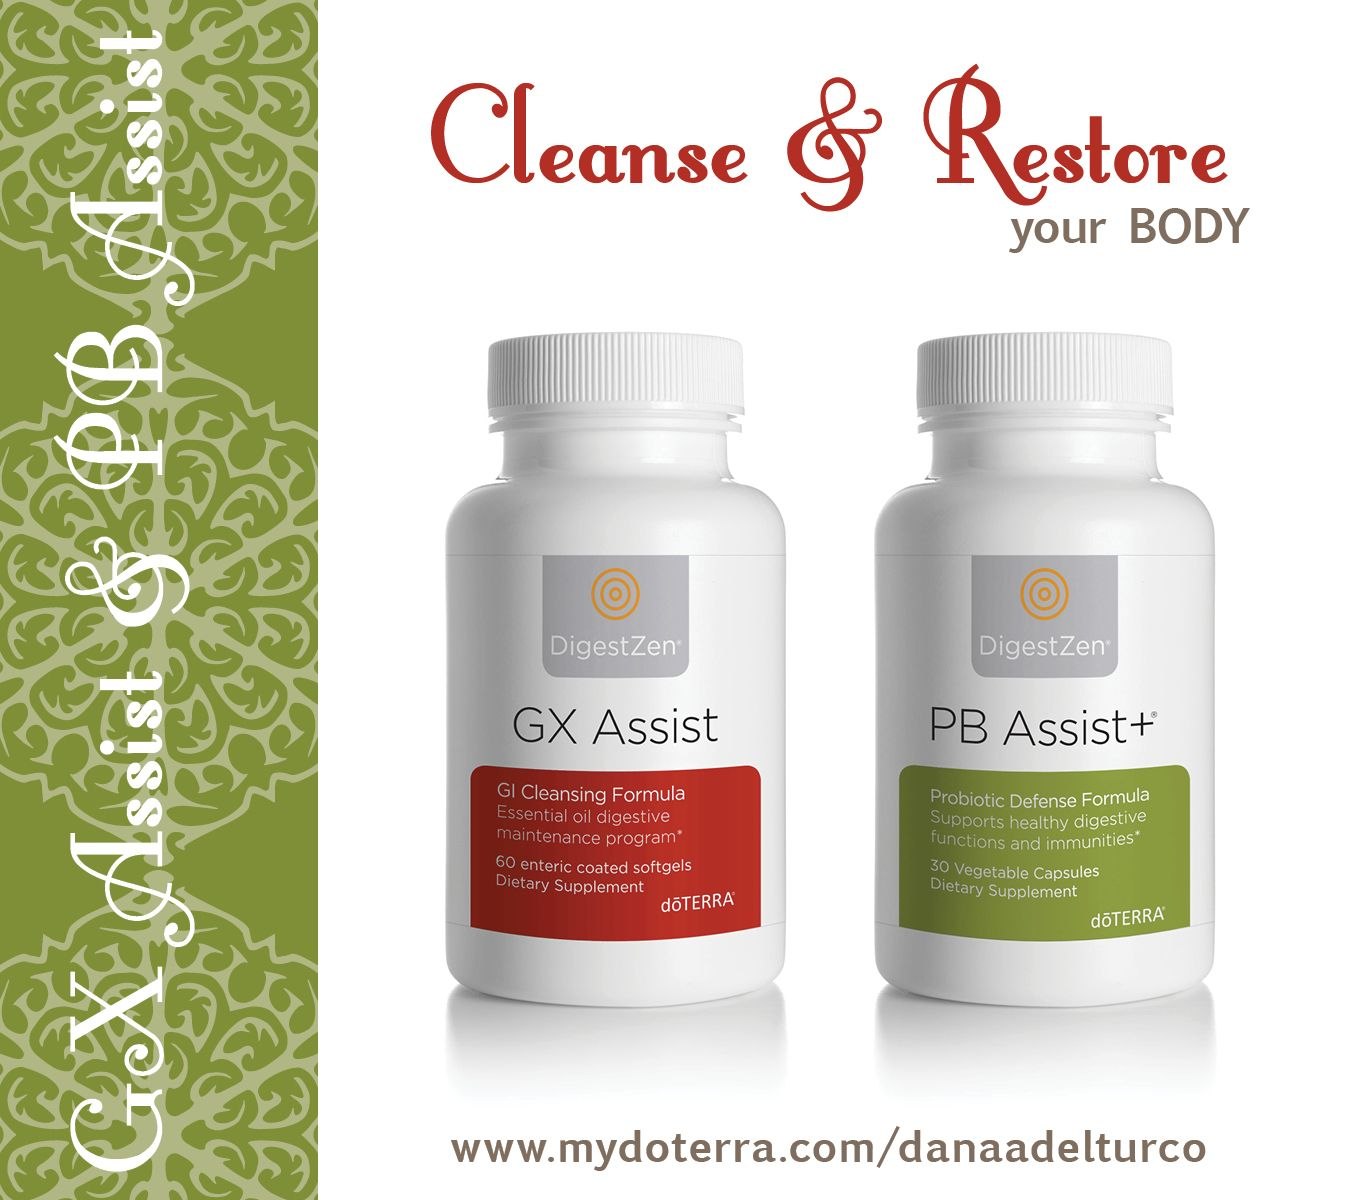 Cleanse & Restore with doTERRA's GX Assist & PB Assist